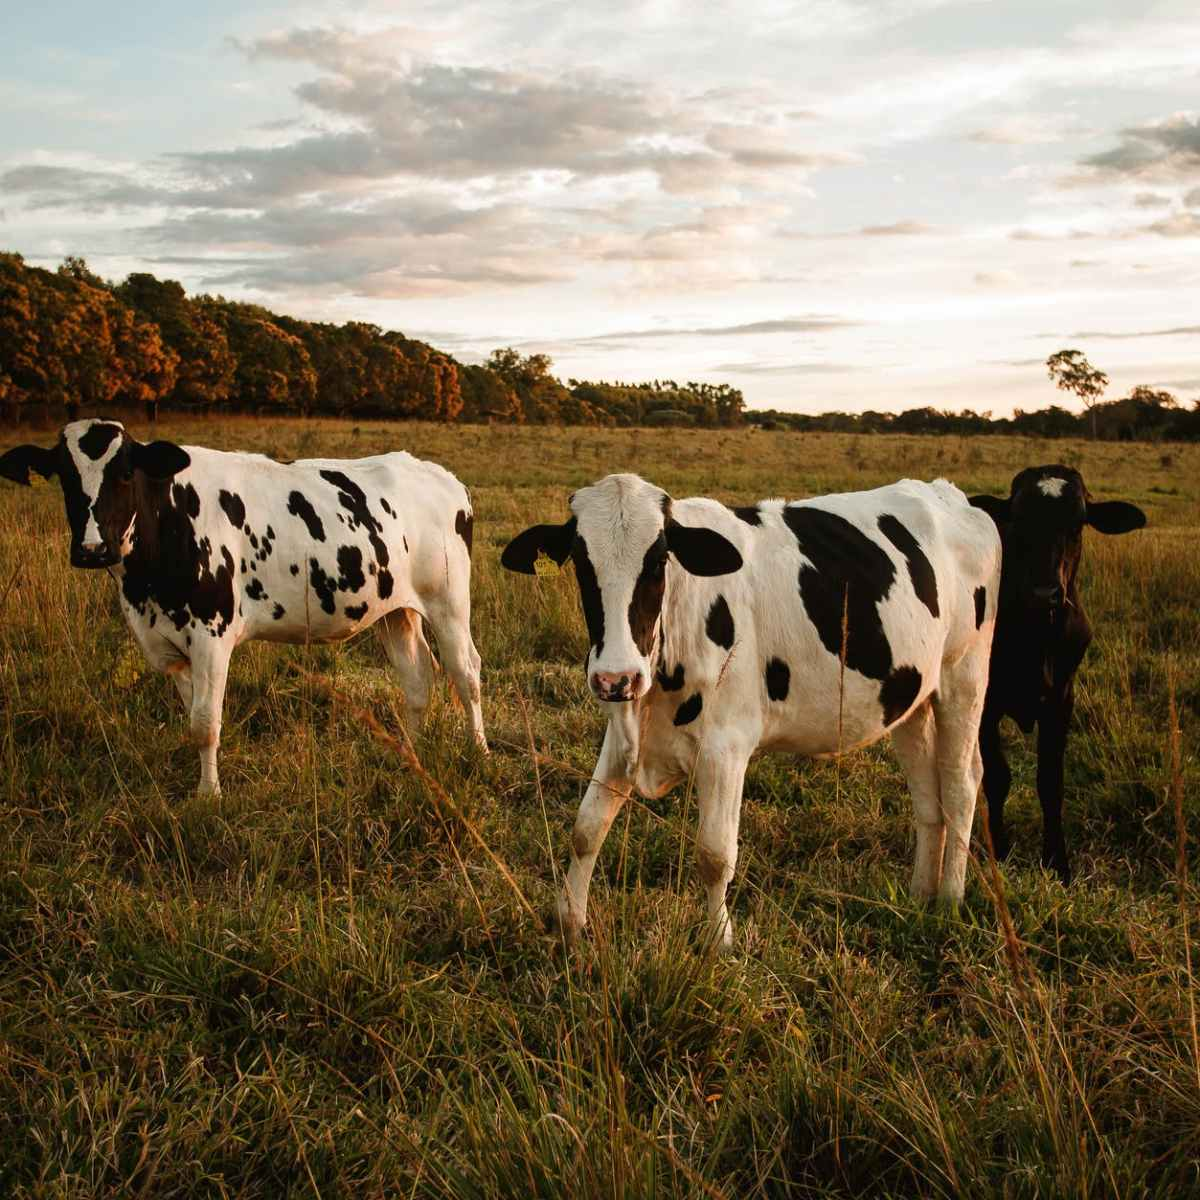 spotted cows on pasture in summertime